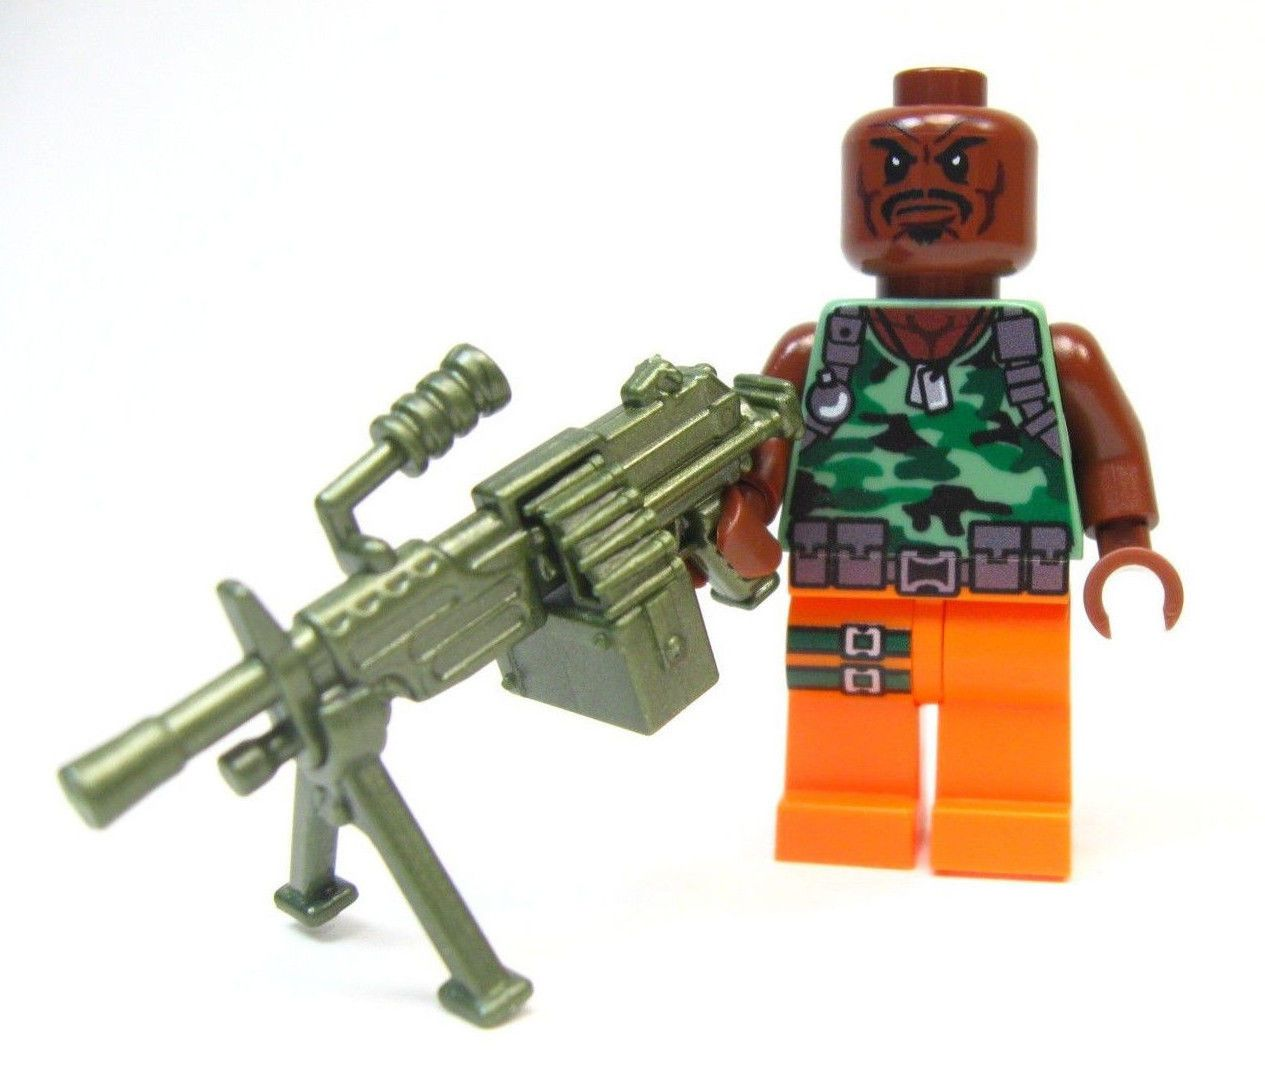 Lego GI Joe Custom - - - - - - ROADBLOCK - - - - Snake eyes Storm ...